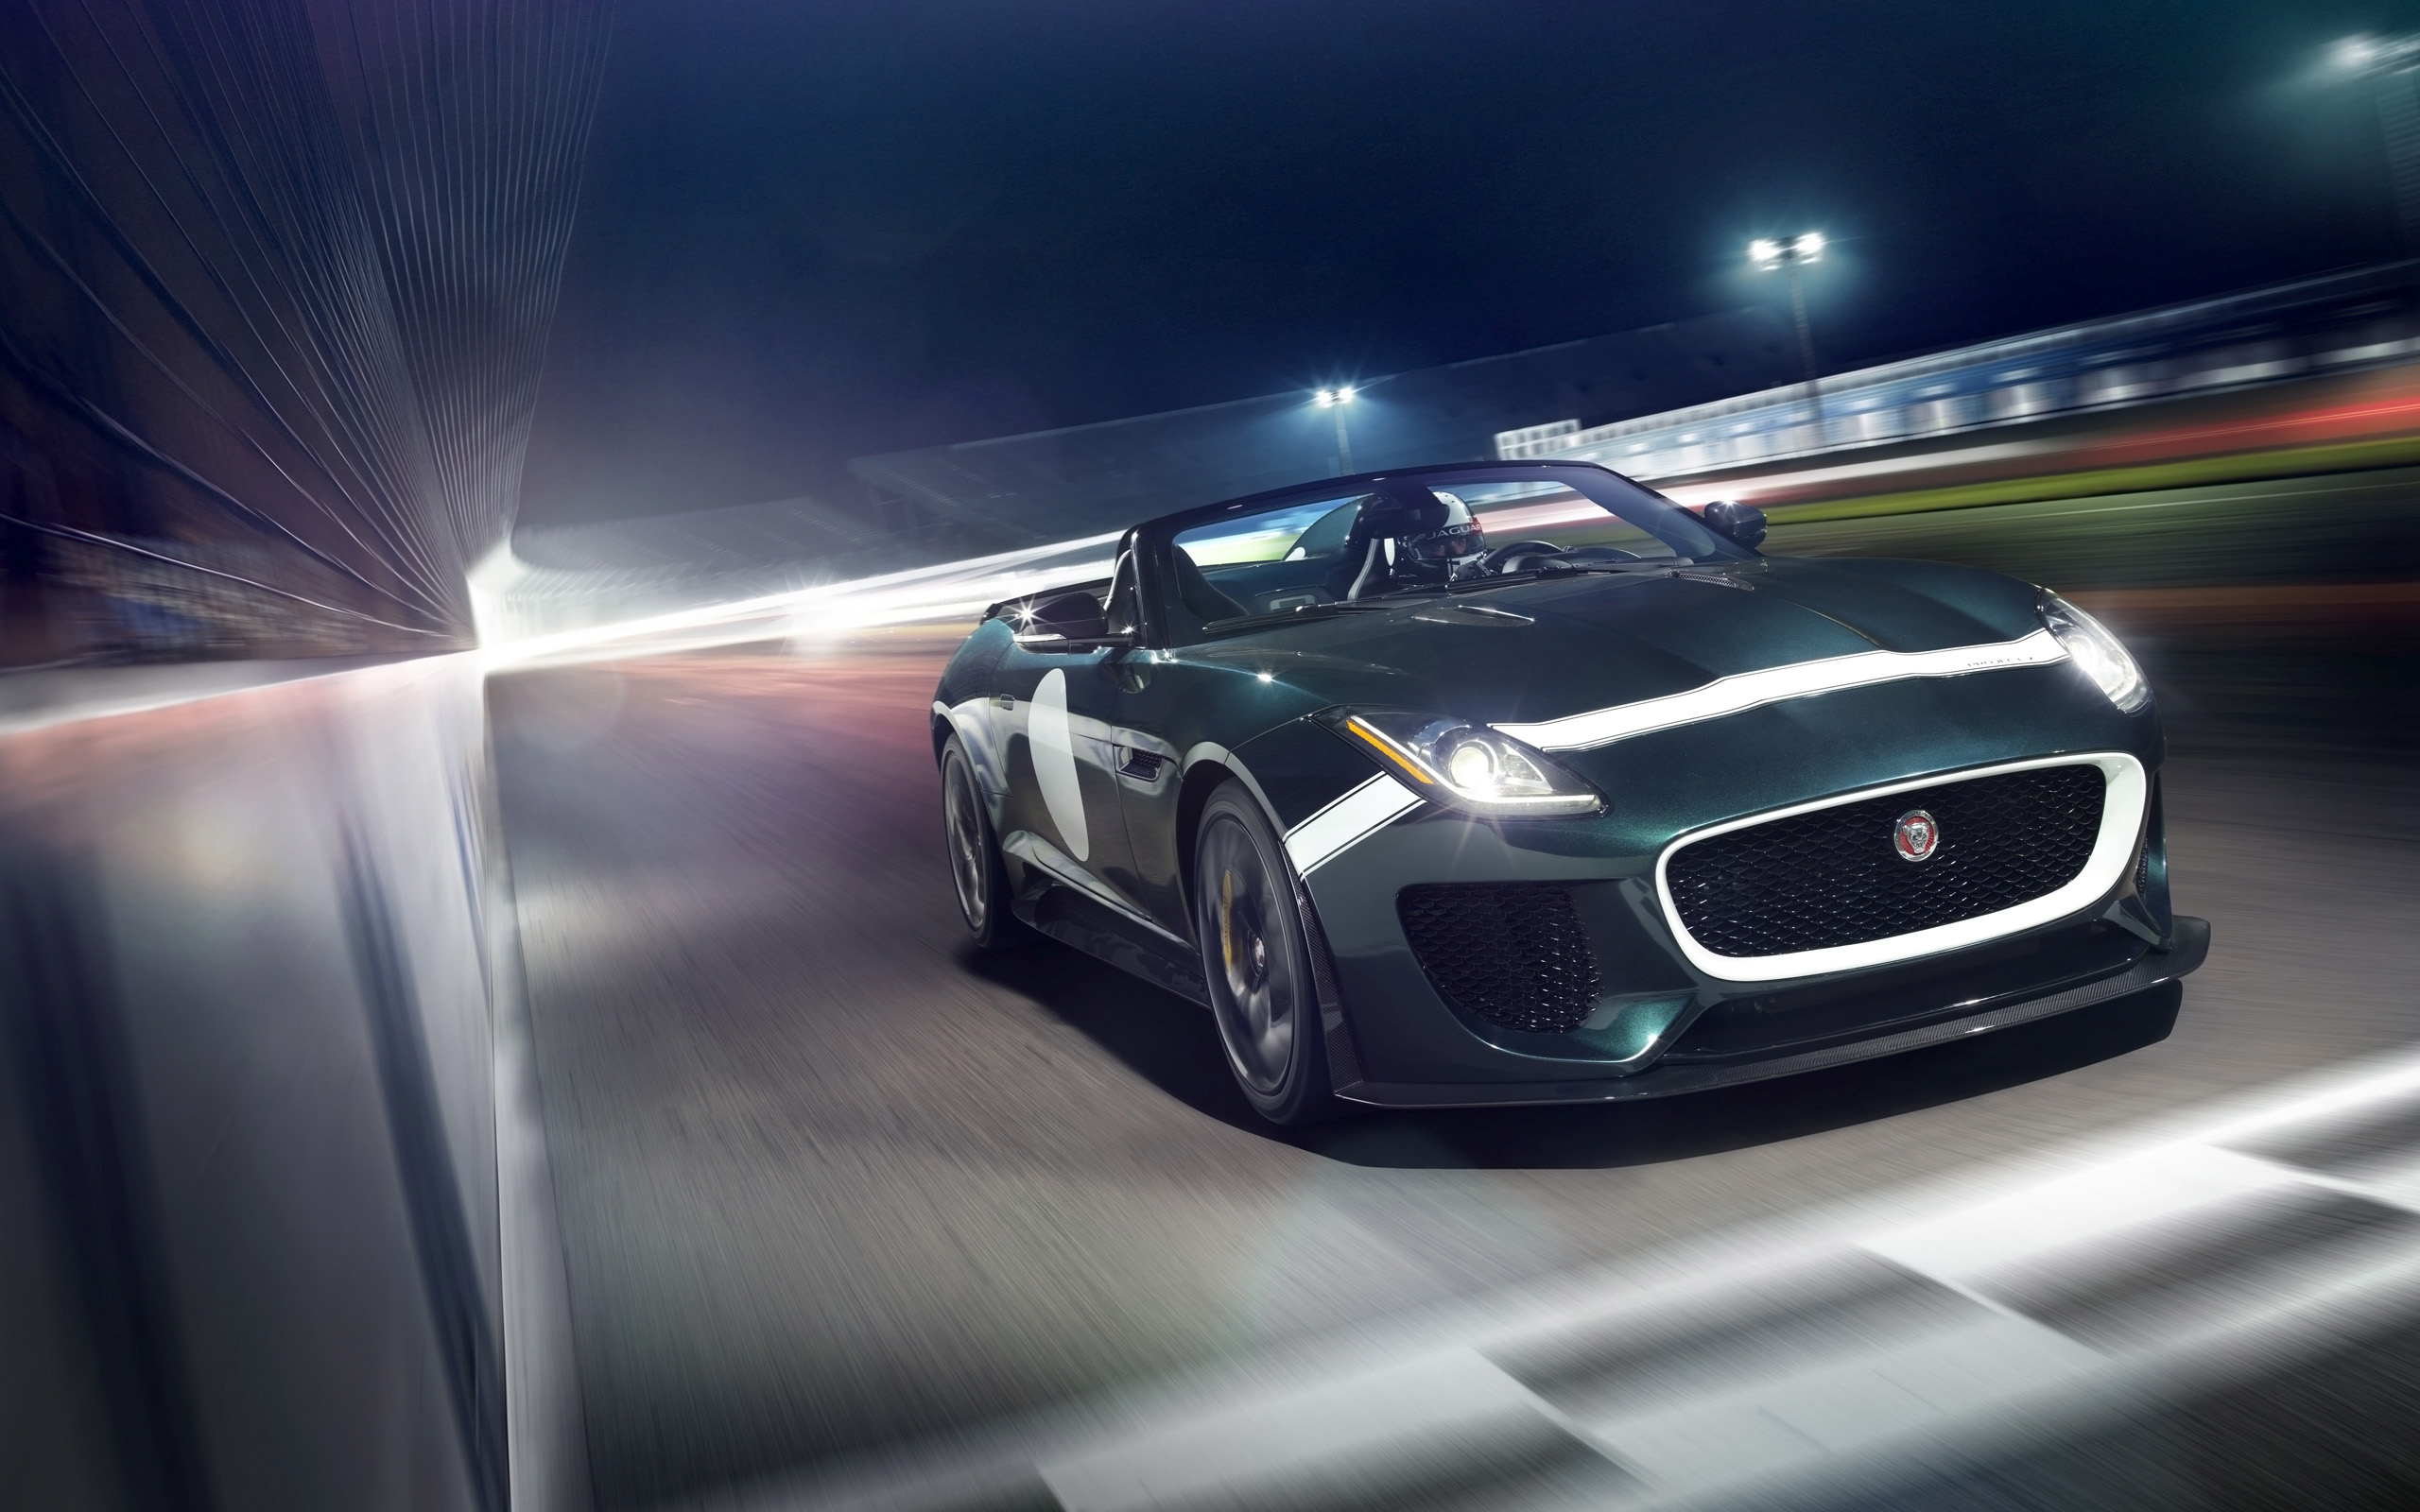 2015 Jaguar F Type Project 7 Wallpaper HD Car Wallpapers 2560x1600